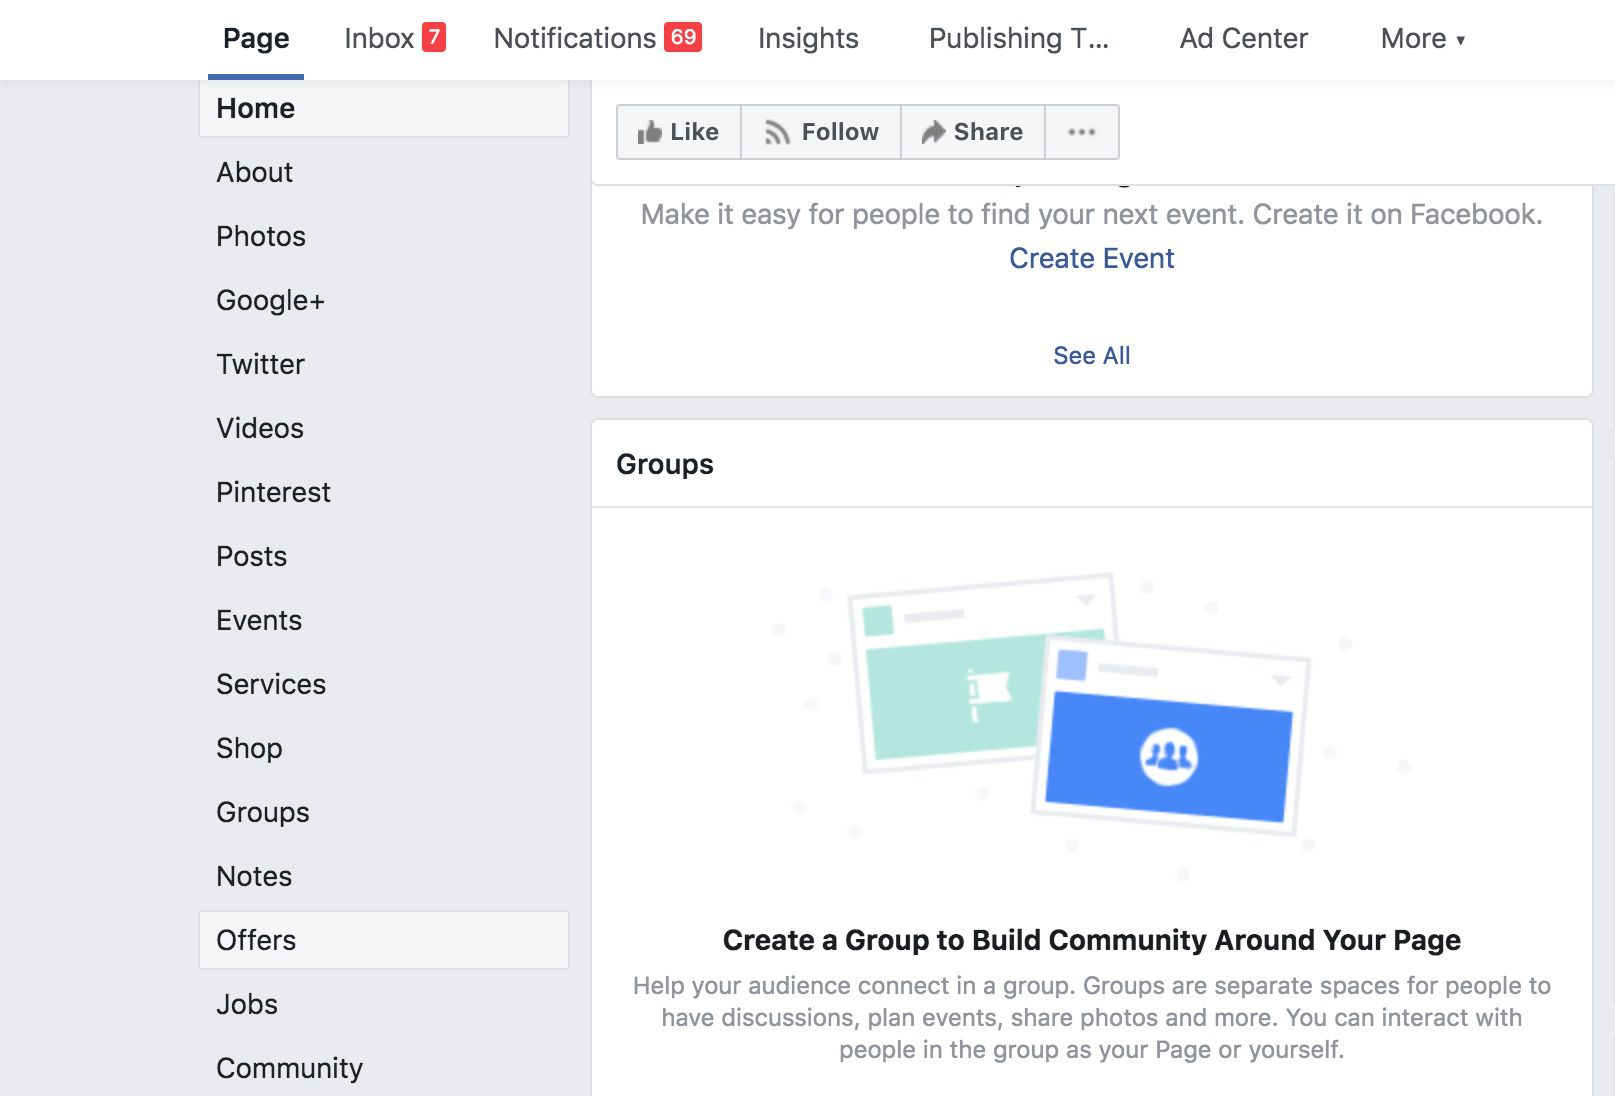 How to Create a Facebook Offer on Your Page